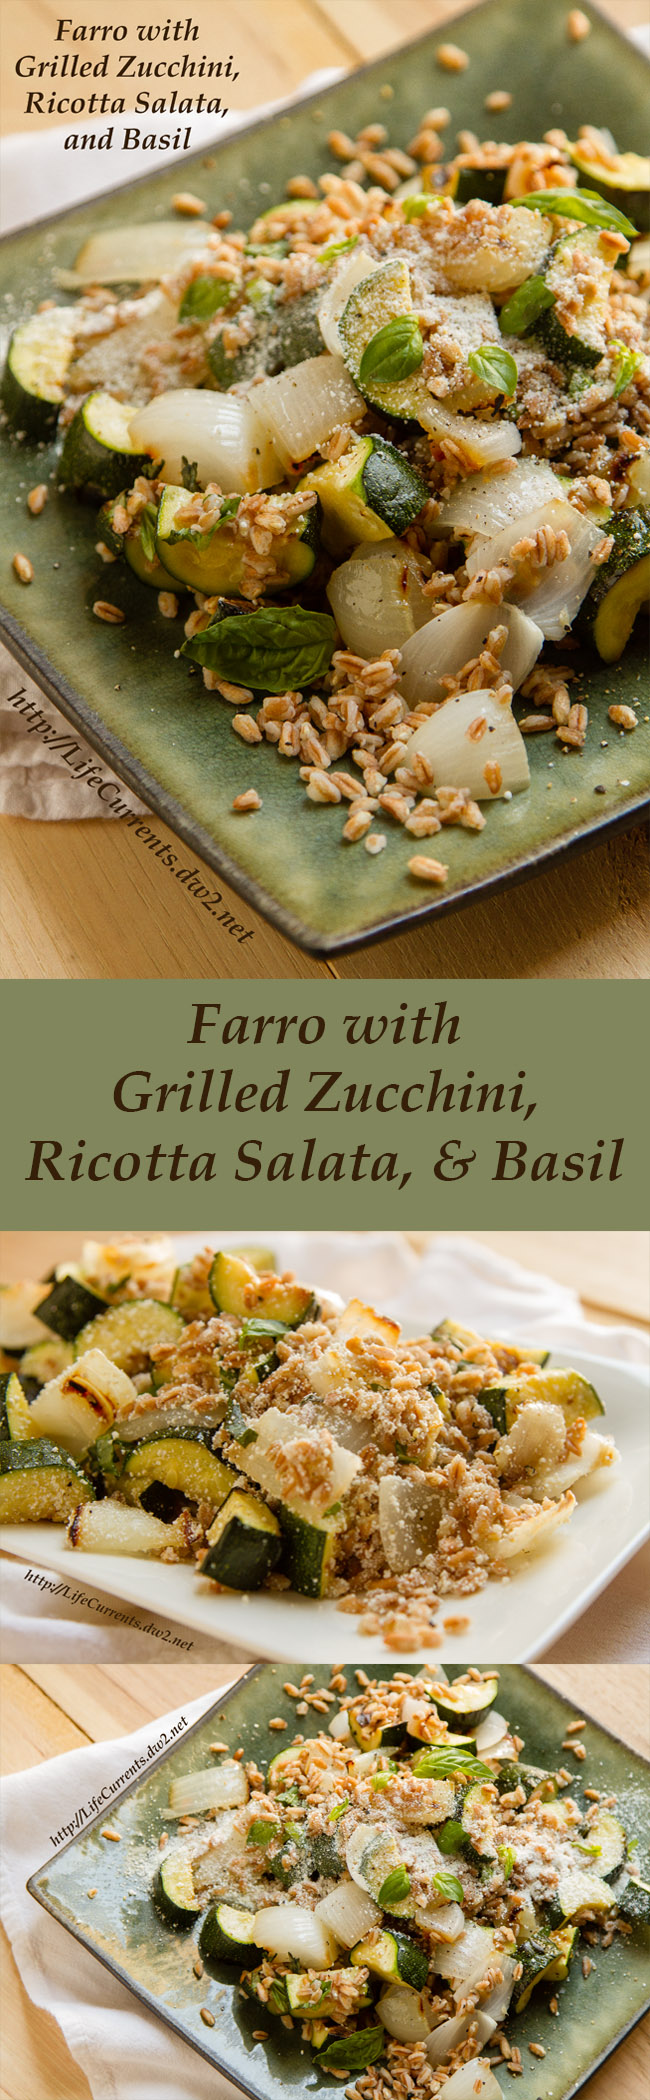 Farro with Grilled Zucchini Ricotta Salata and Basil Recipe long pin for pinterest with 3 images